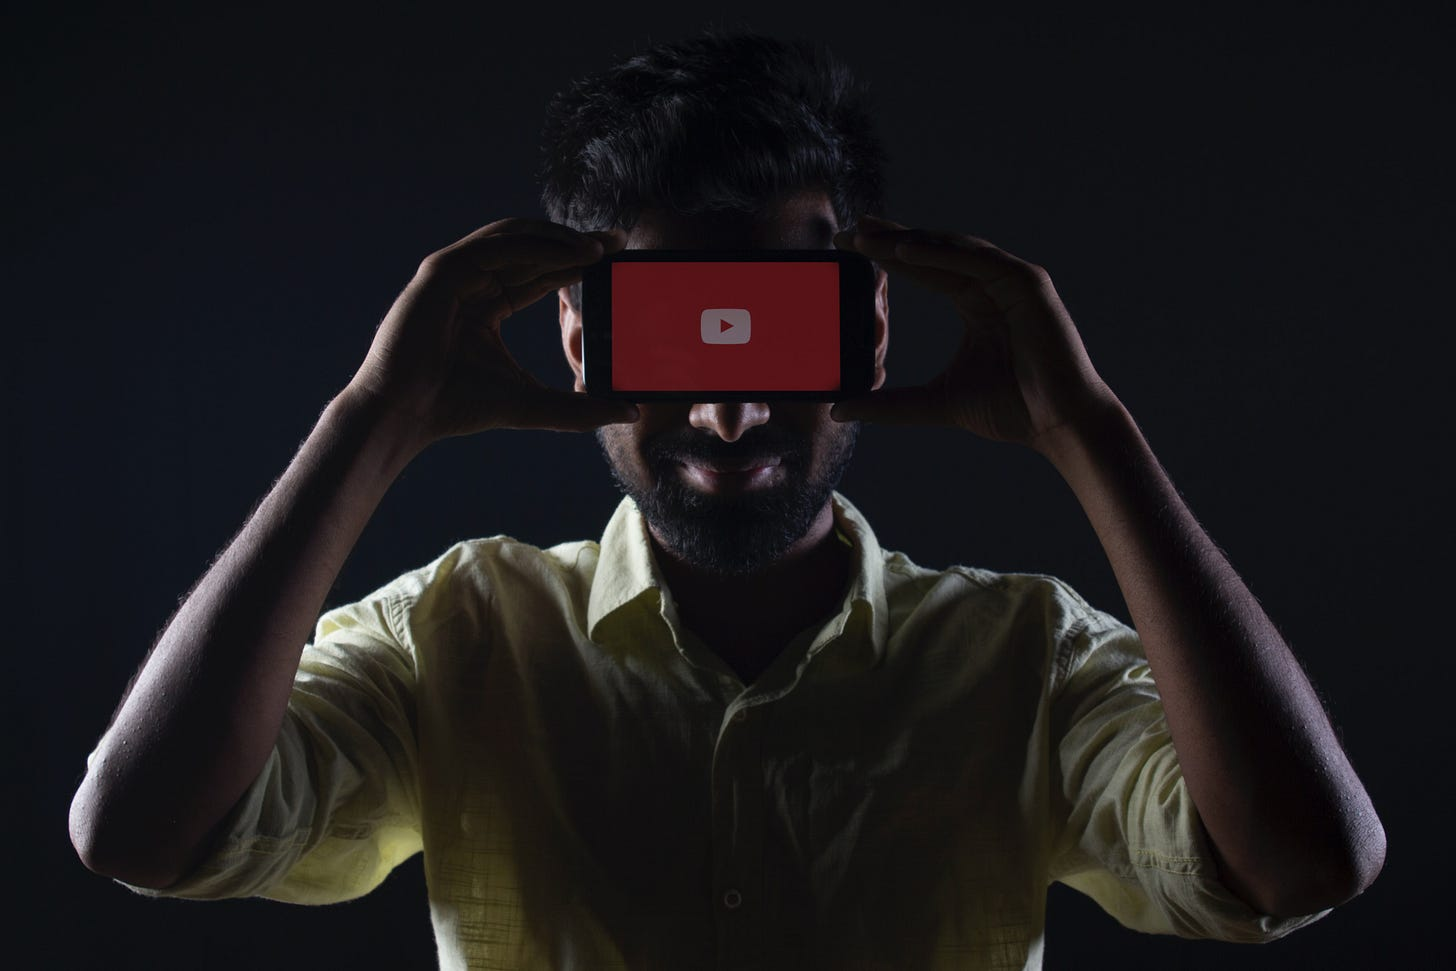 A man holds a phone showing YouTube's logo on his forehead. Photo by Ratchit Tank / Unsplash